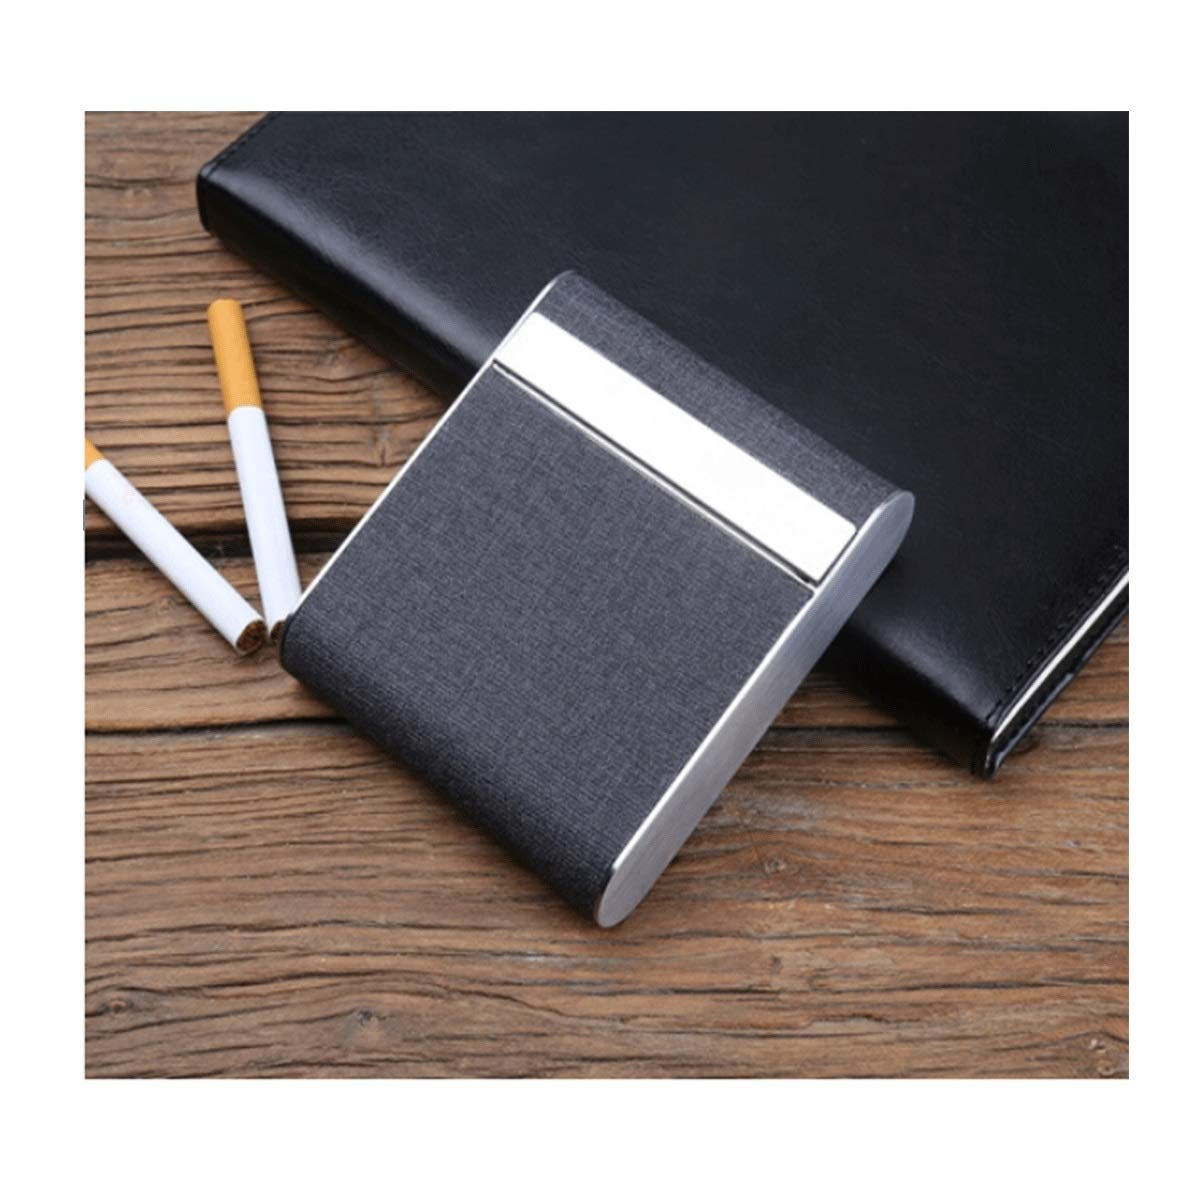 WENPINHUI Cigarette Box Creative Stainless Steel Portable Male And Female Personality Flip Cover Cigarette Case Fashion Cigarette Pack To Send Leadership To Send Boyfriend Can Accommodate 20 Cigarette by WENPINHUI